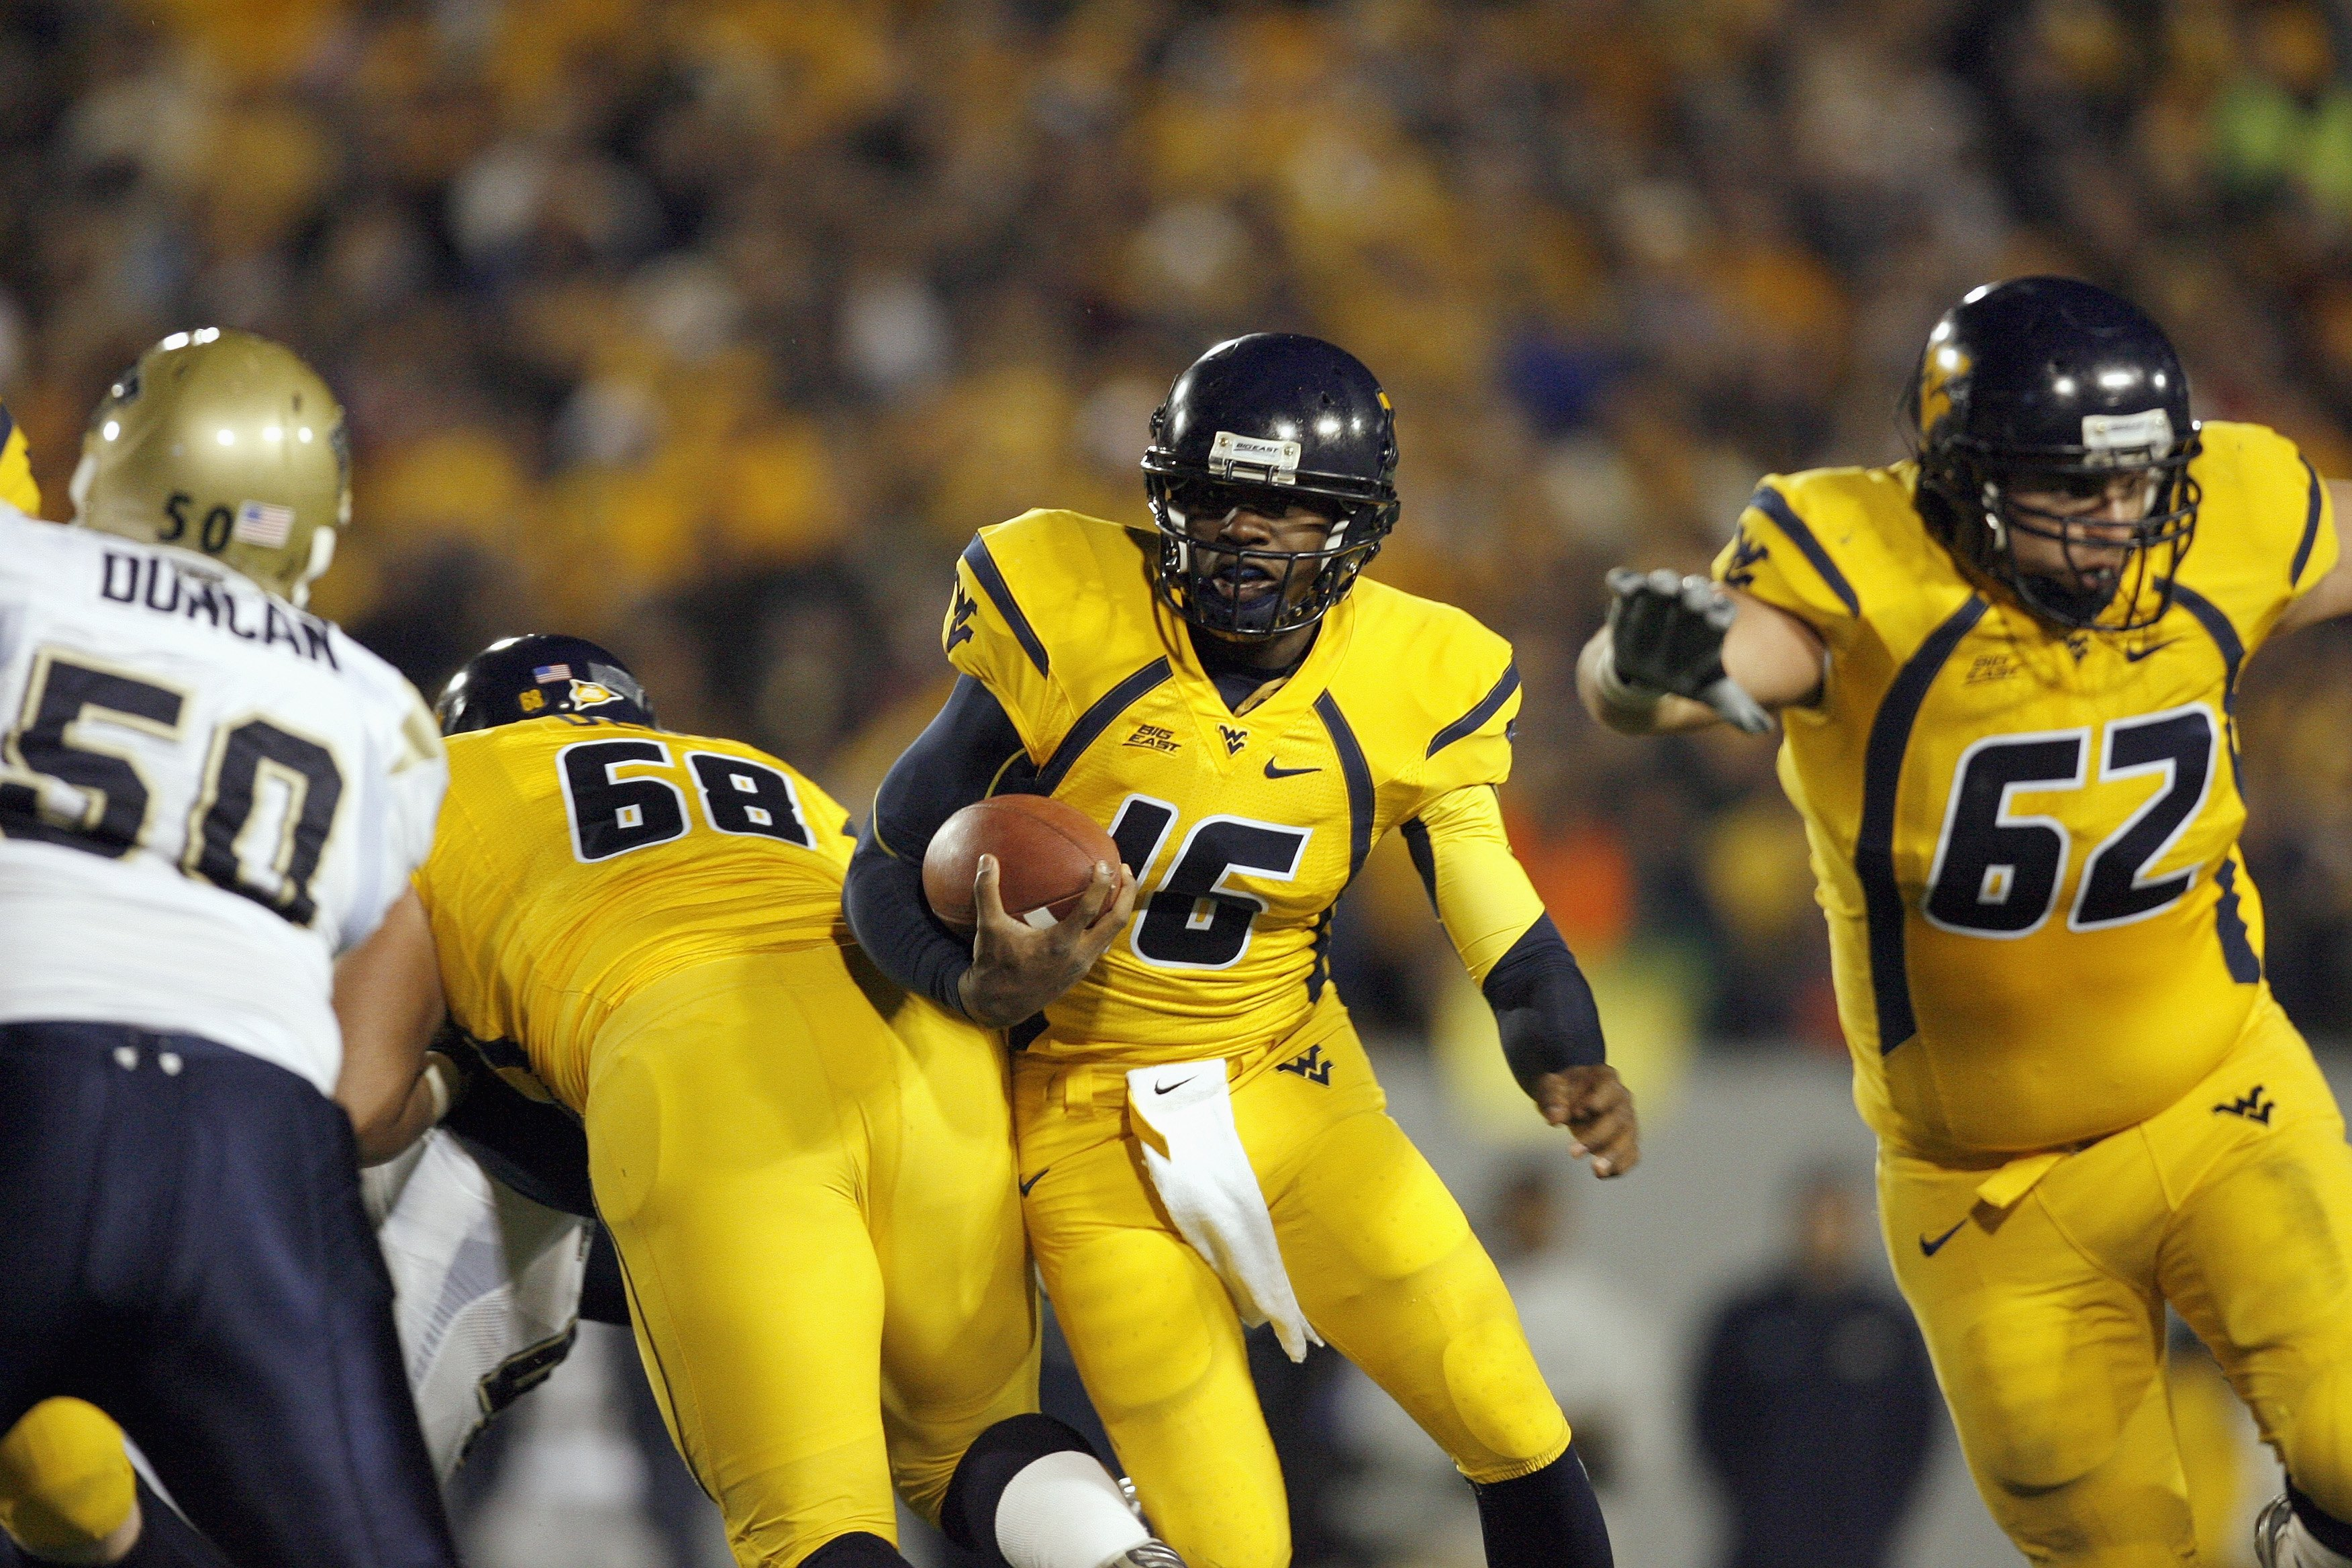 MORGANTOWN, WV - DECEMBER 1: Jarrett Brown #16 of the West Virginia Mountaineers carries the ball during the game against the Pittsburgh Panthers at Milan Puskar Stadium on December 1, 2007 in Morgantown, West Virginia. (Photo by Kevin C. Cox/Getty Images